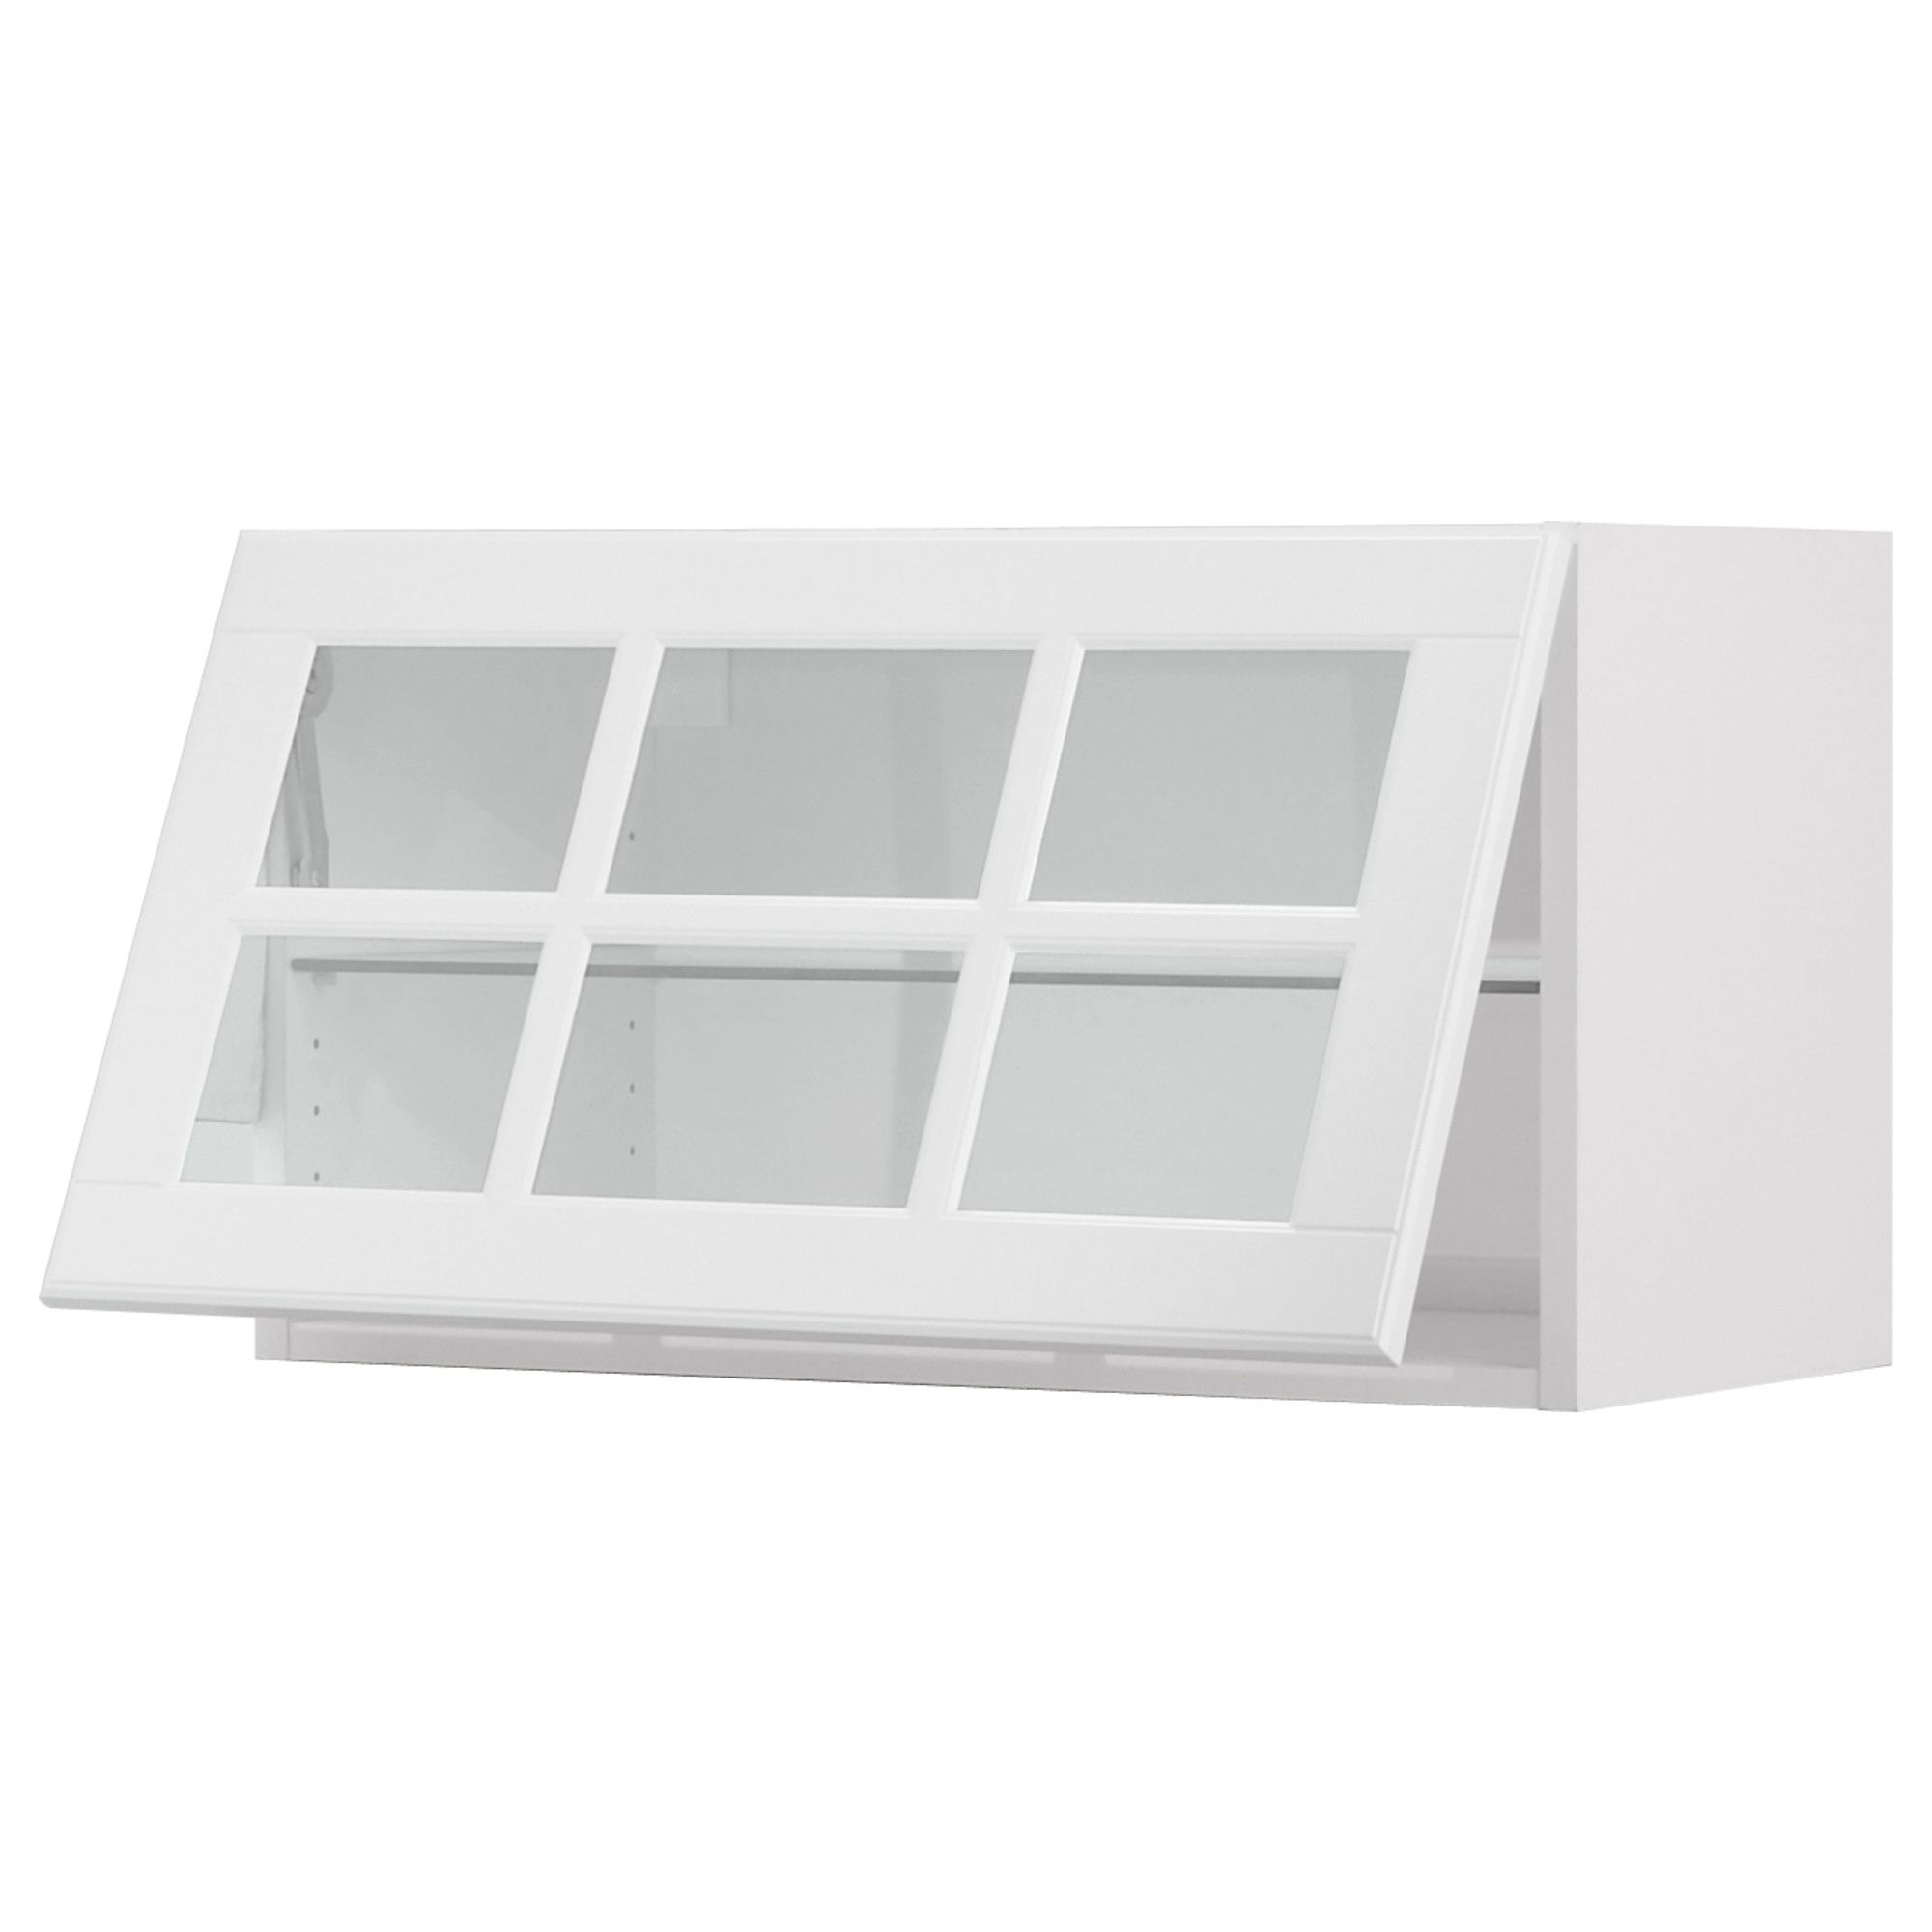 Wandvitrine Glas Akurum Wall Cab Horizontal W Glass Door Birch Lidi White 30